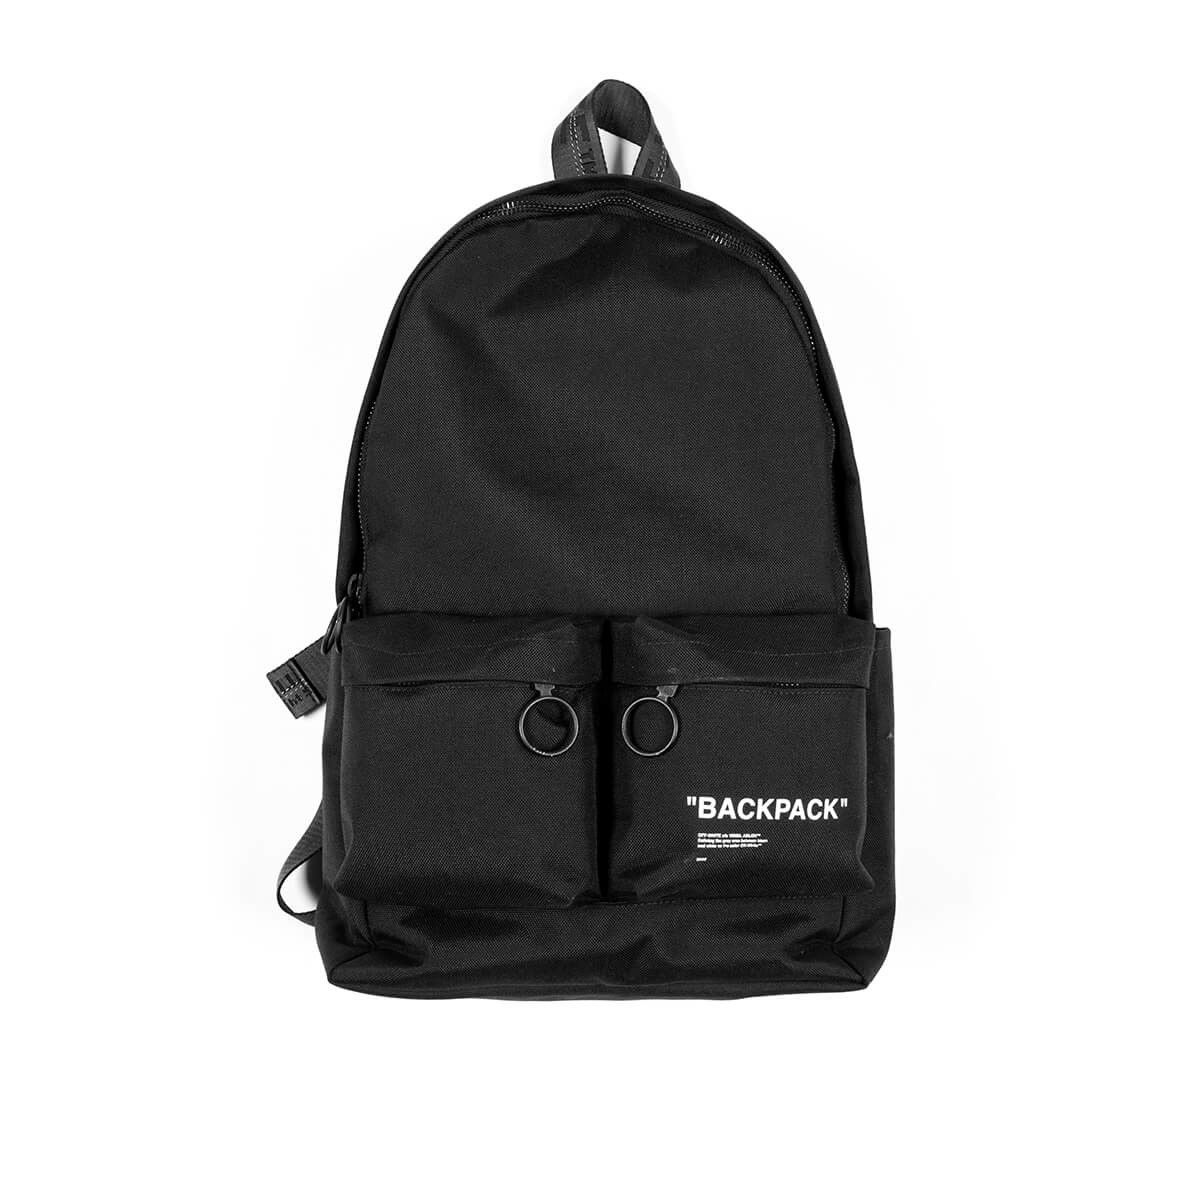 ddcb8a6e8b474b Quote backpack from the Pre-Fall 2018 Off-White c/o Virgil Abloh ...